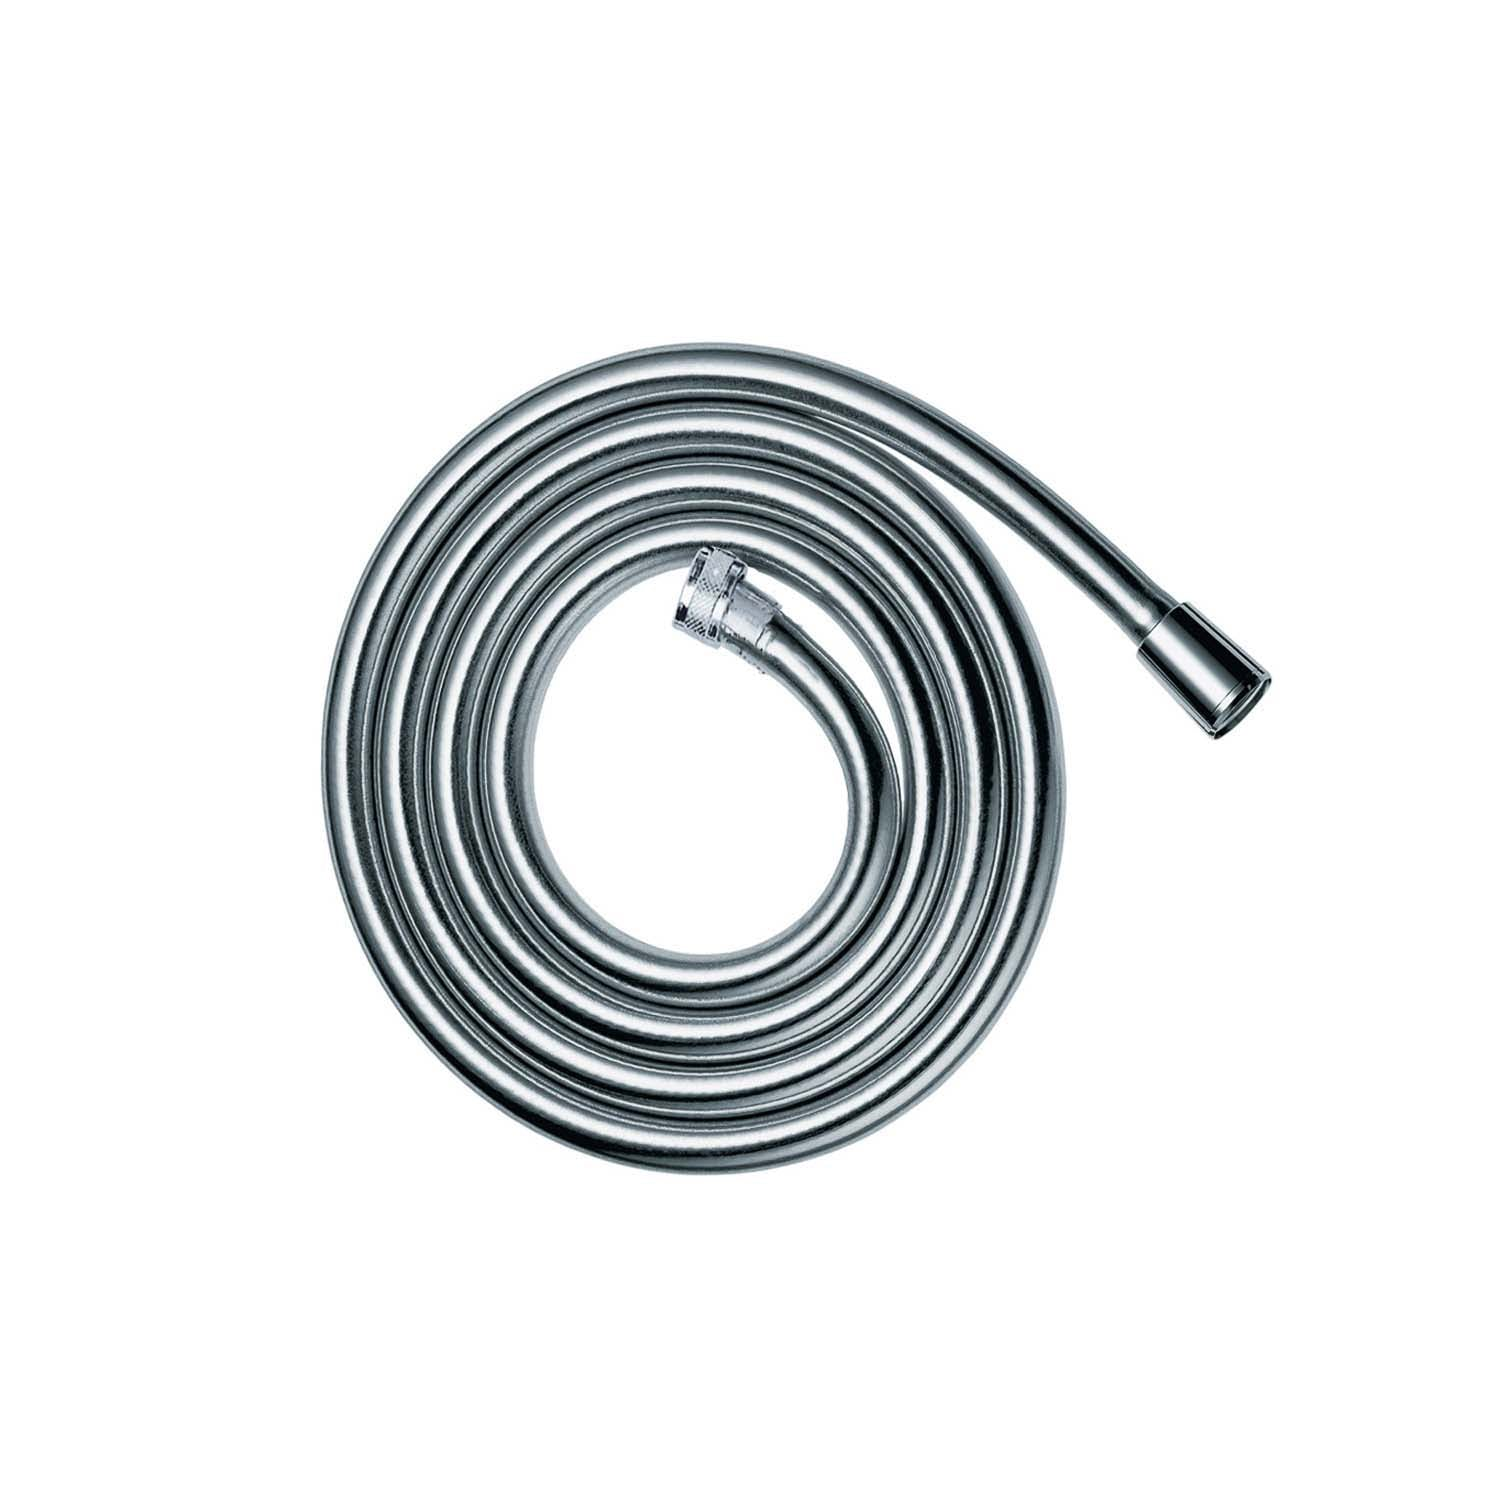 1250mm smooth metal shower hose with a plastic coating chrome finish on a white background